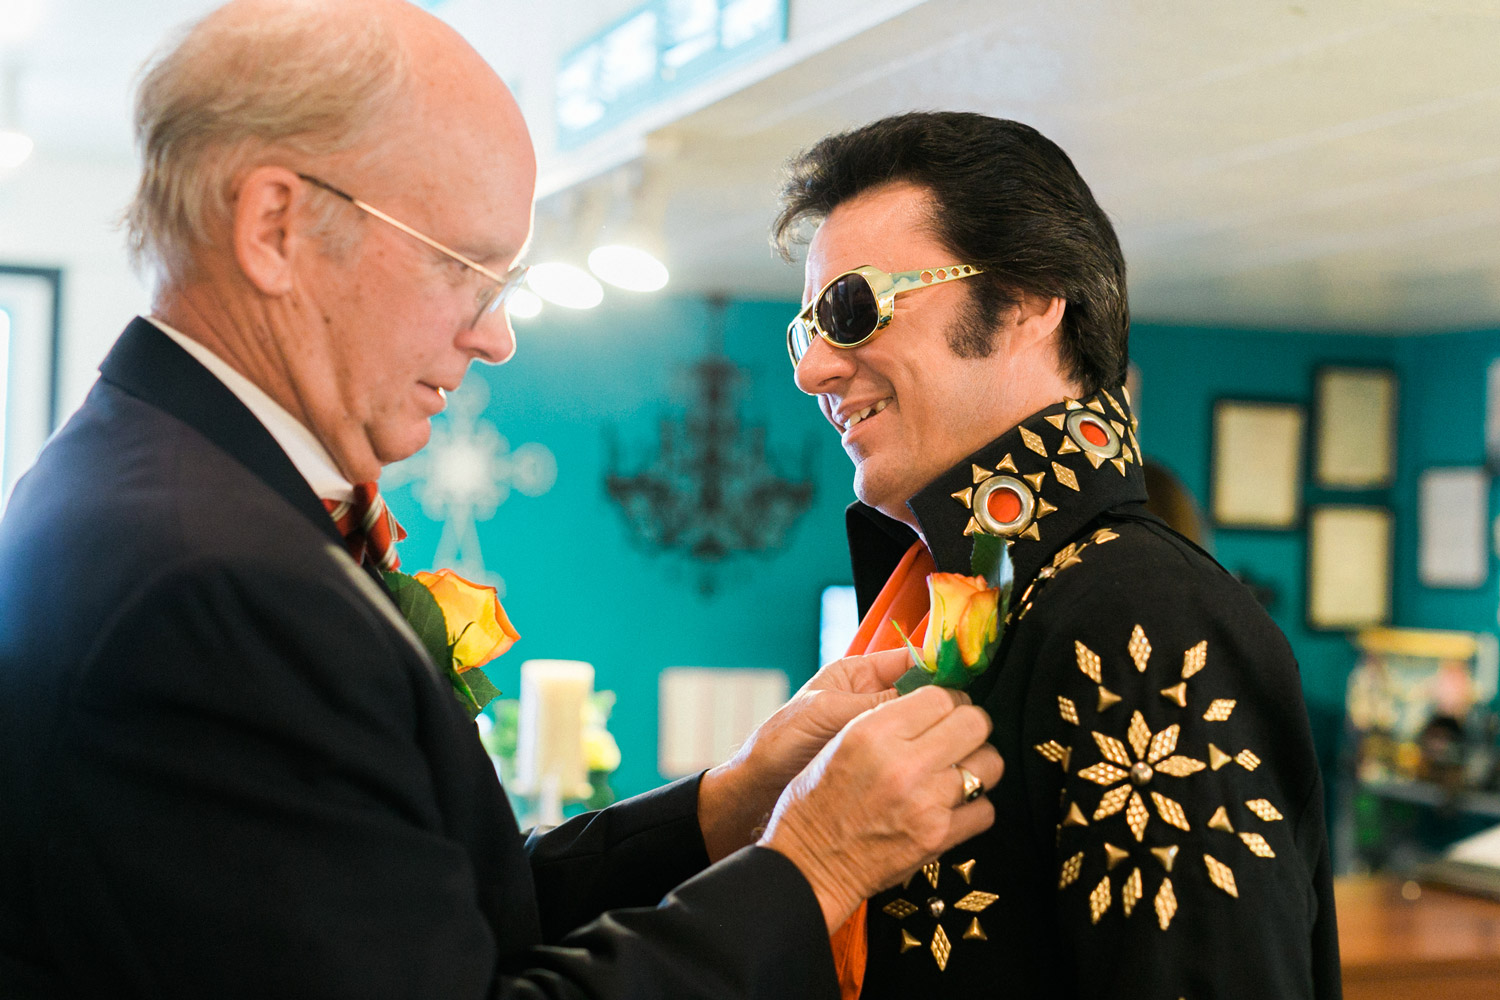 Giving Elvis a Boutonniere